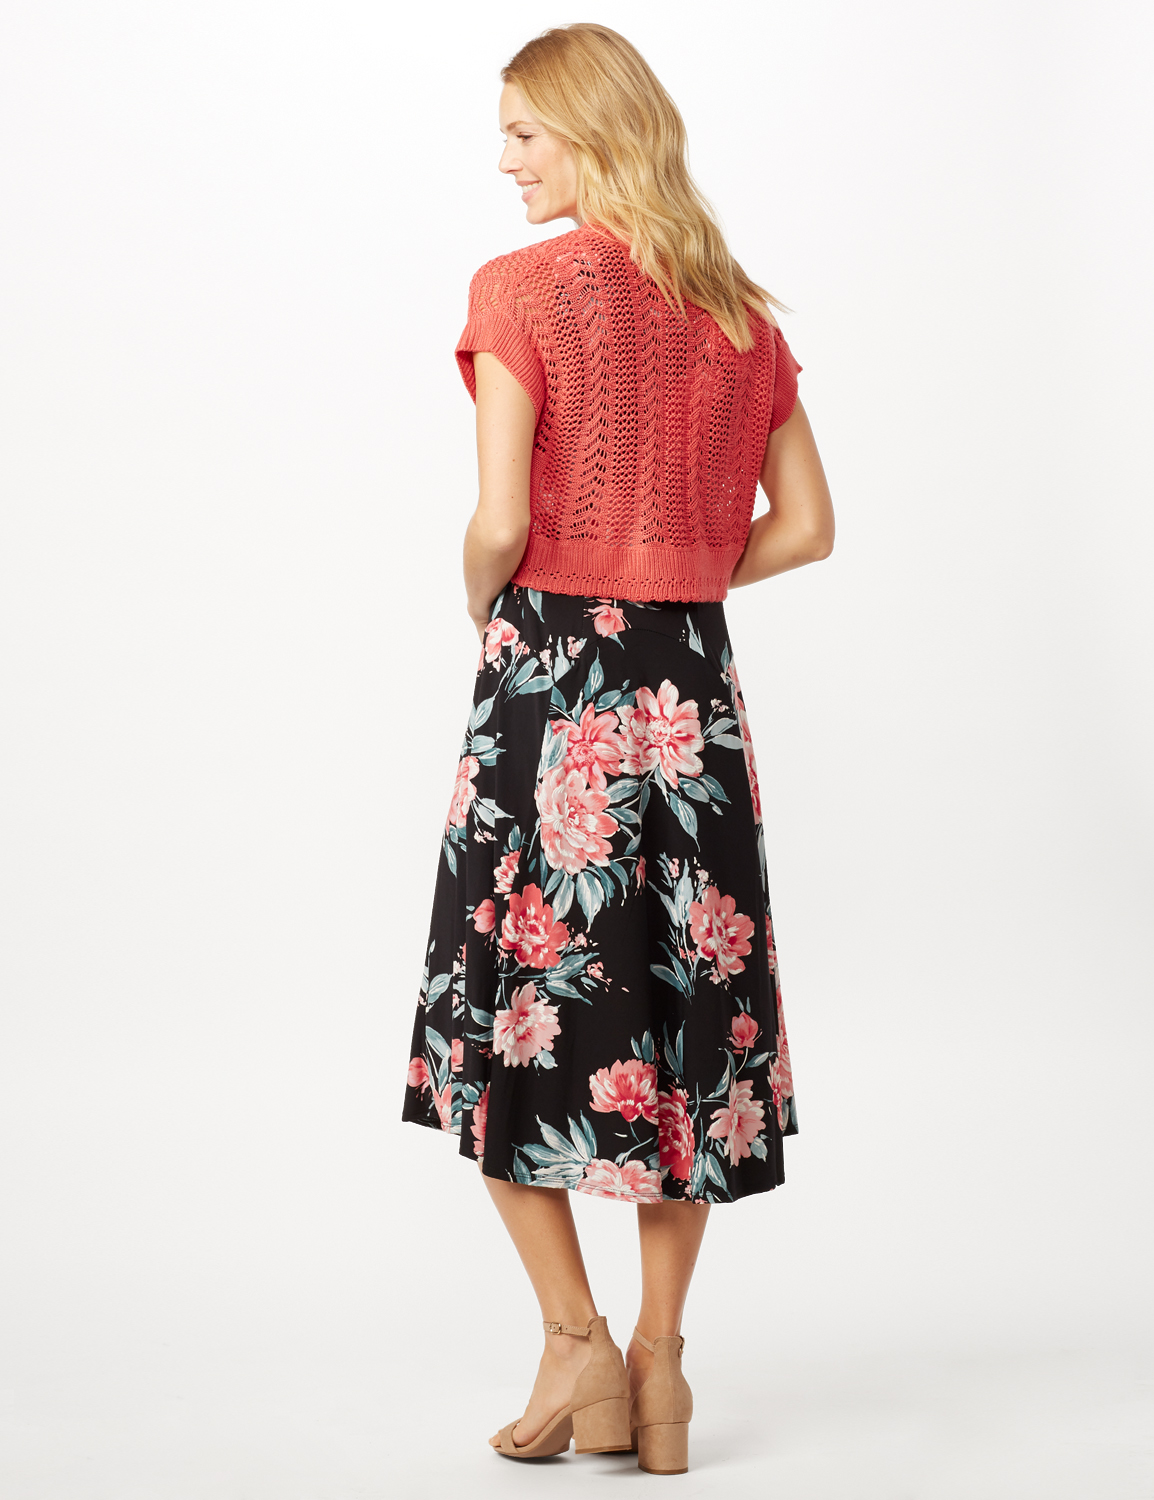 Floral Dress with Crochet Sweater -Navy/pink - Back